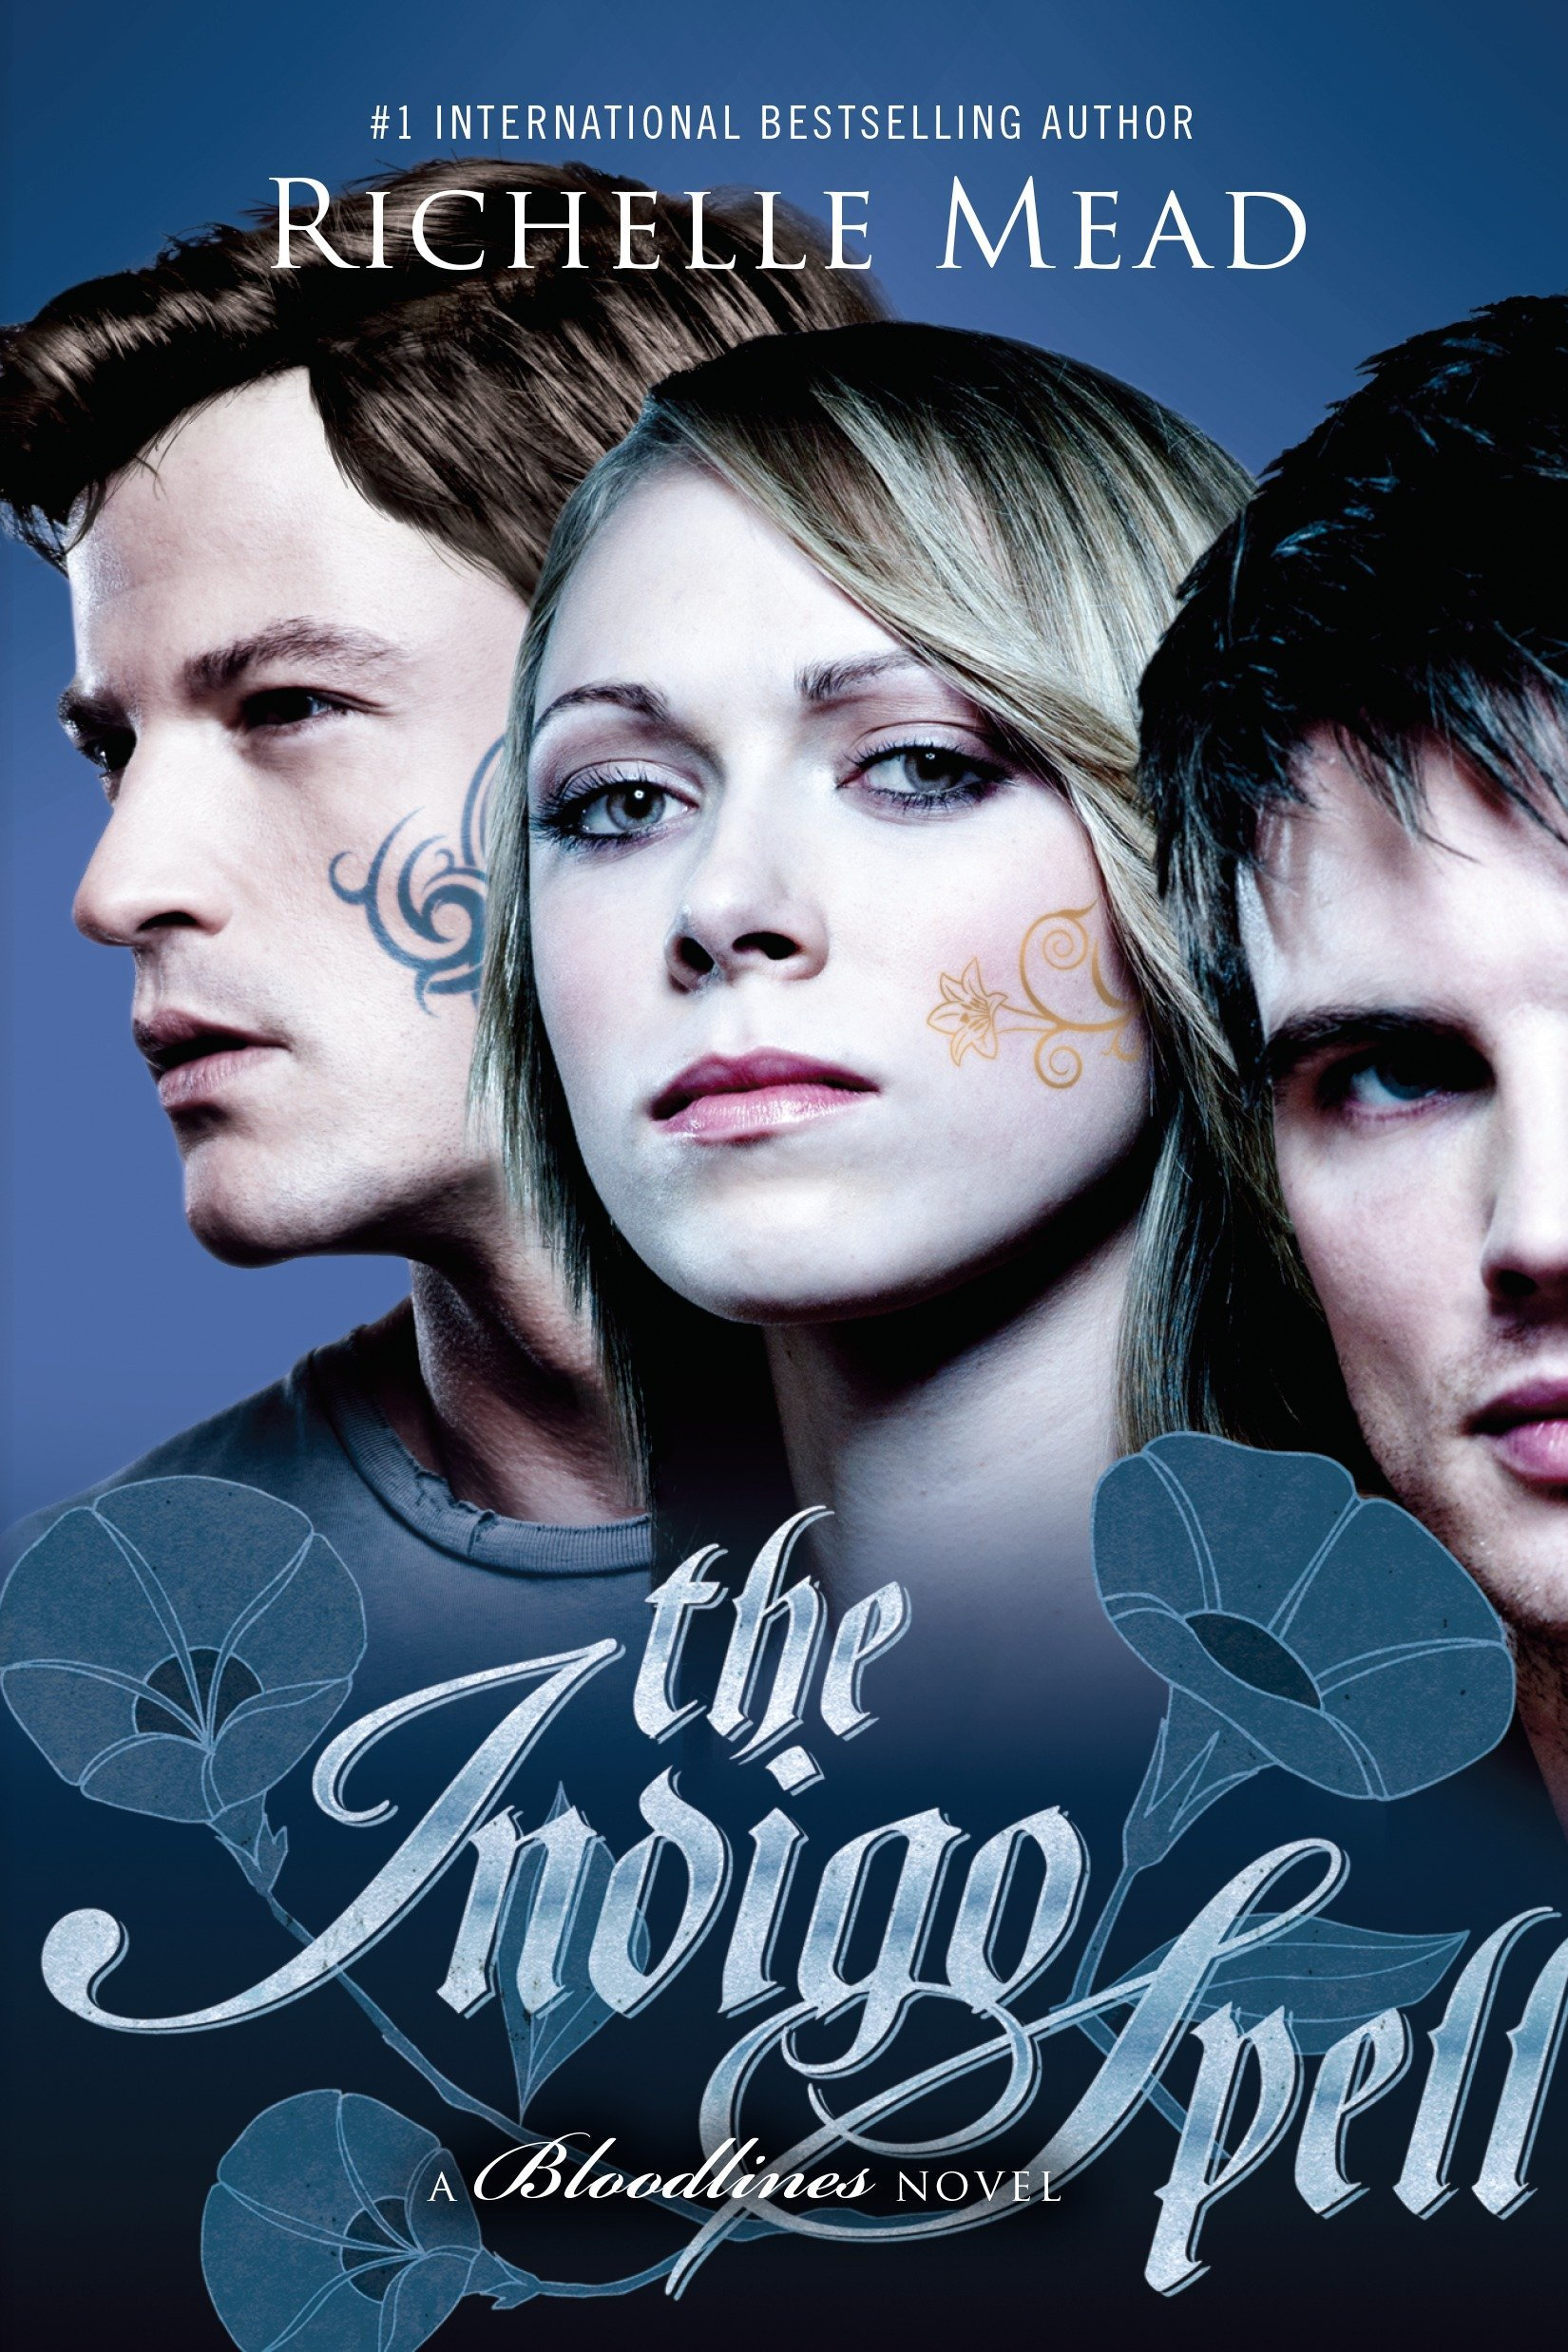 The Indigo Spell - Bloodlines #3 - Richelle Mead